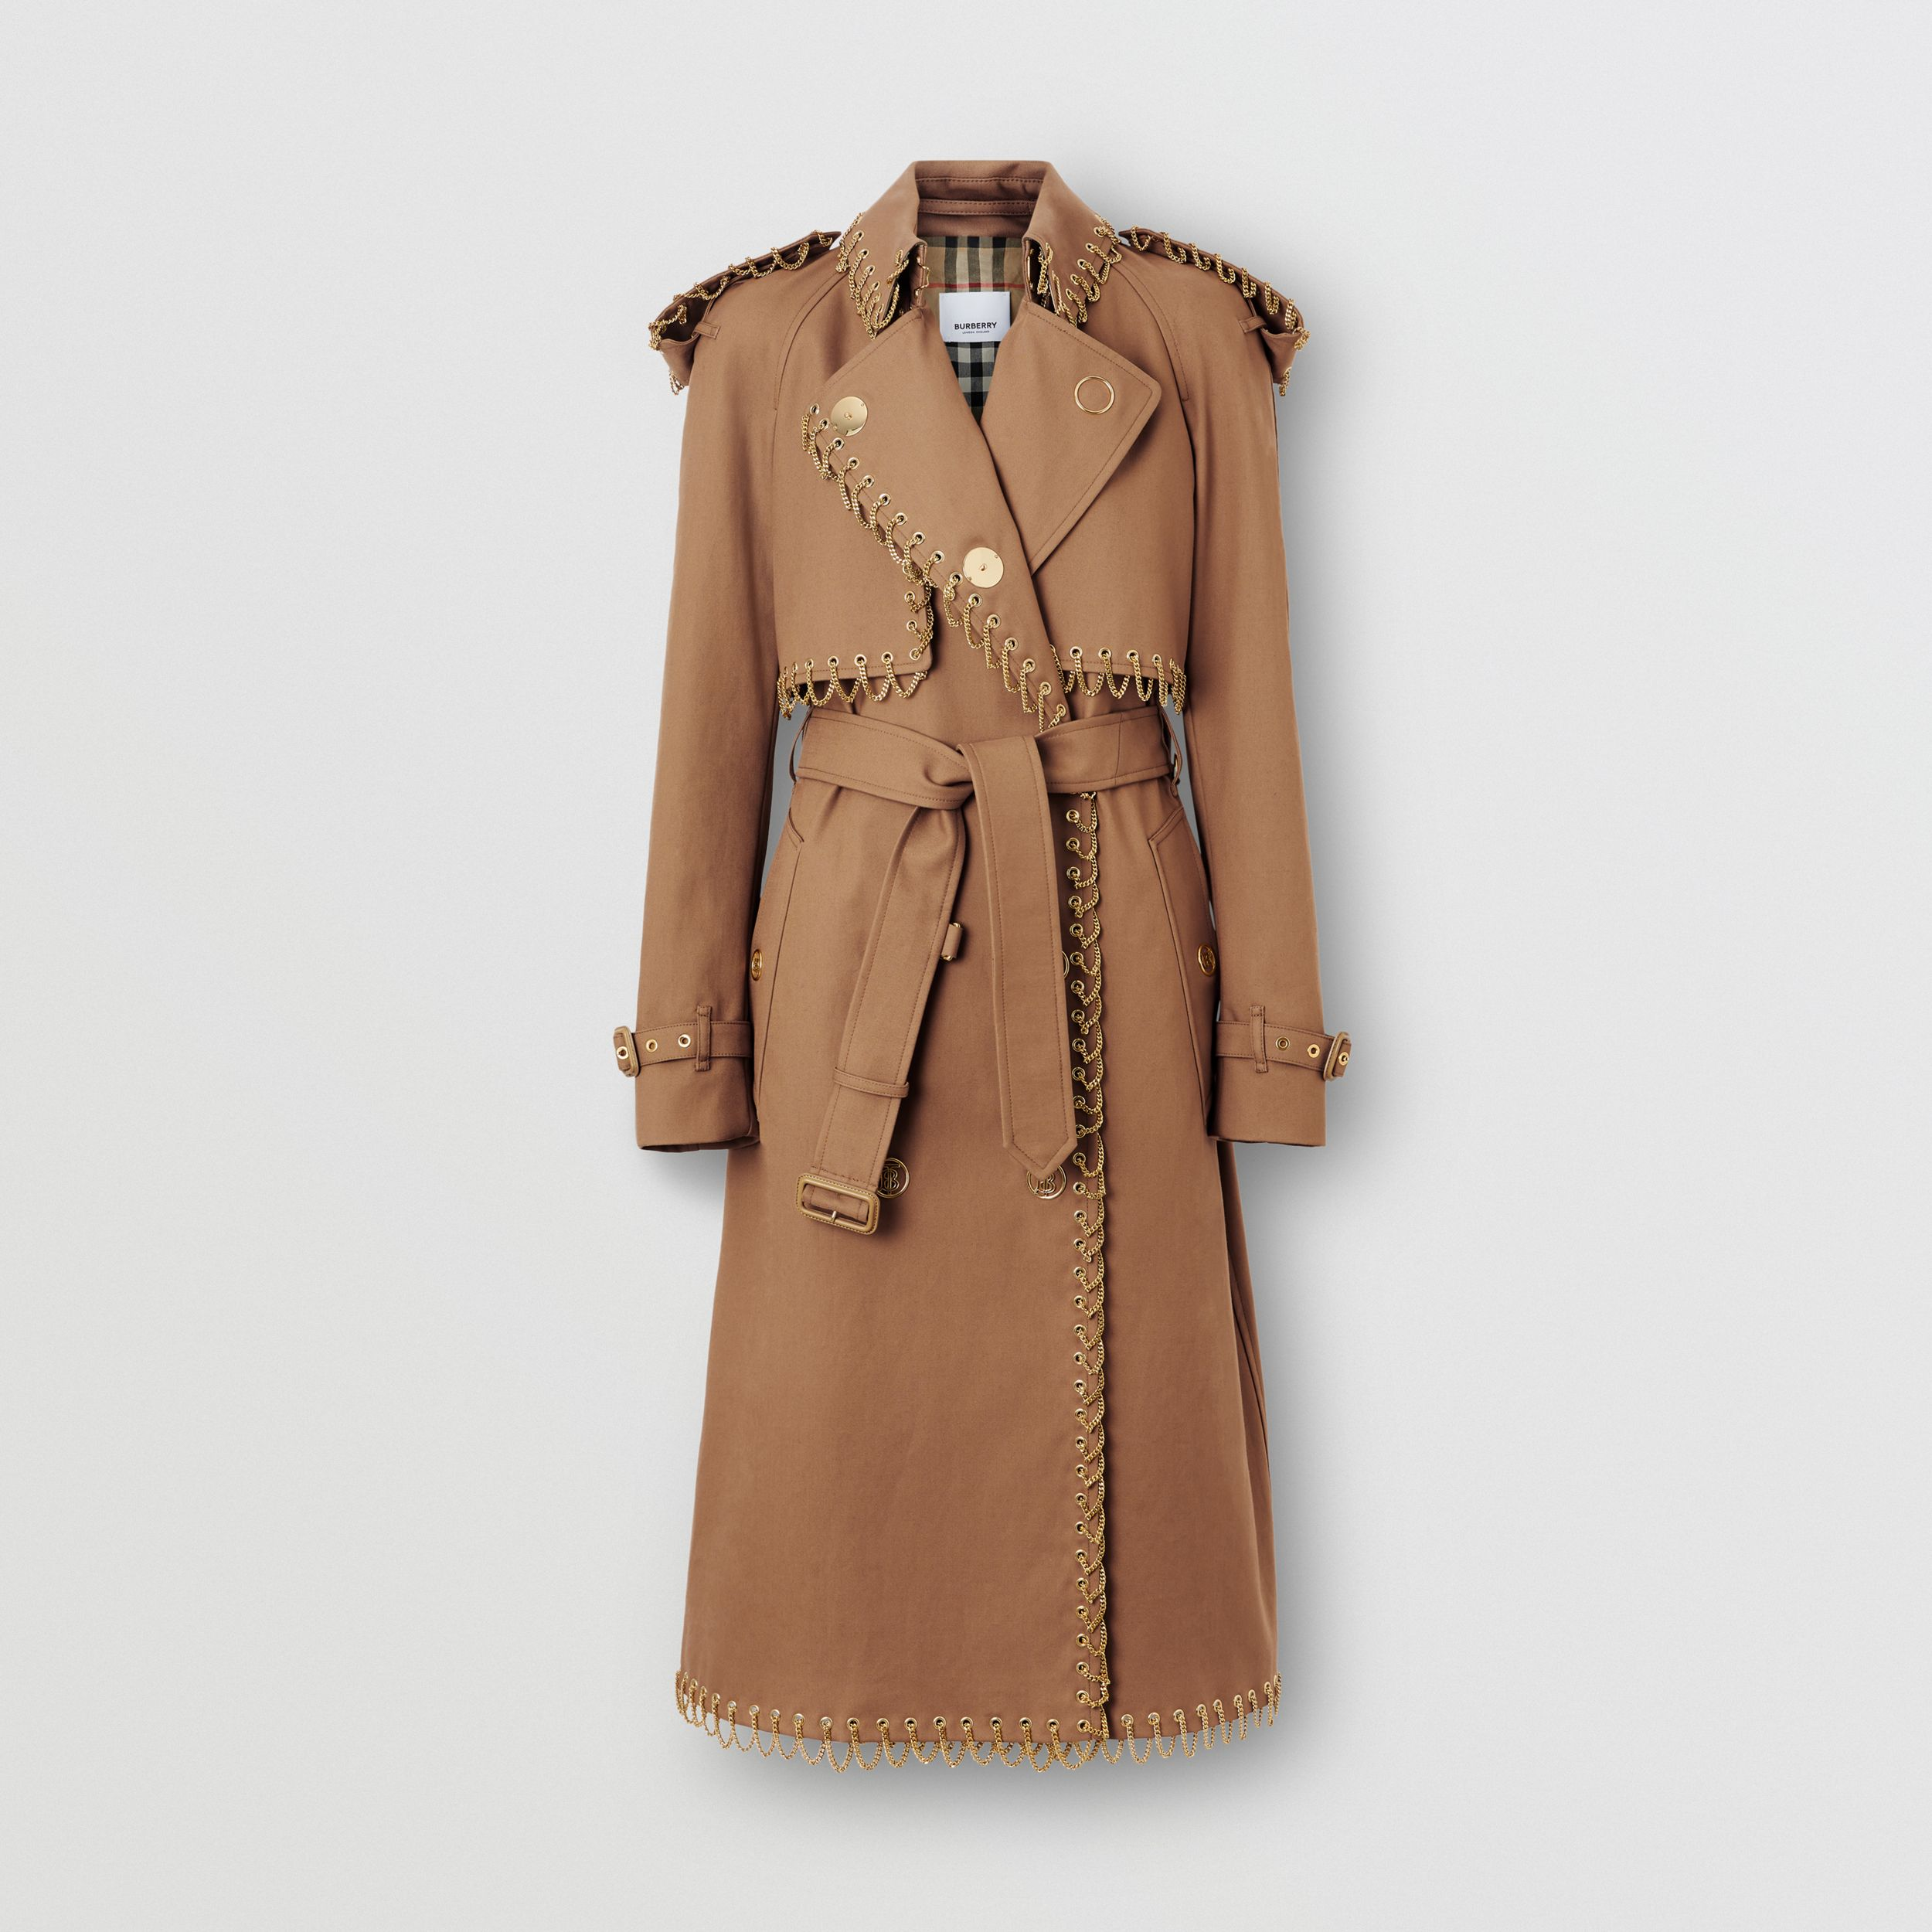 Chain Detail Cotton Gabardine Trench Coat in Warm Walnut - Women | Burberry - 4